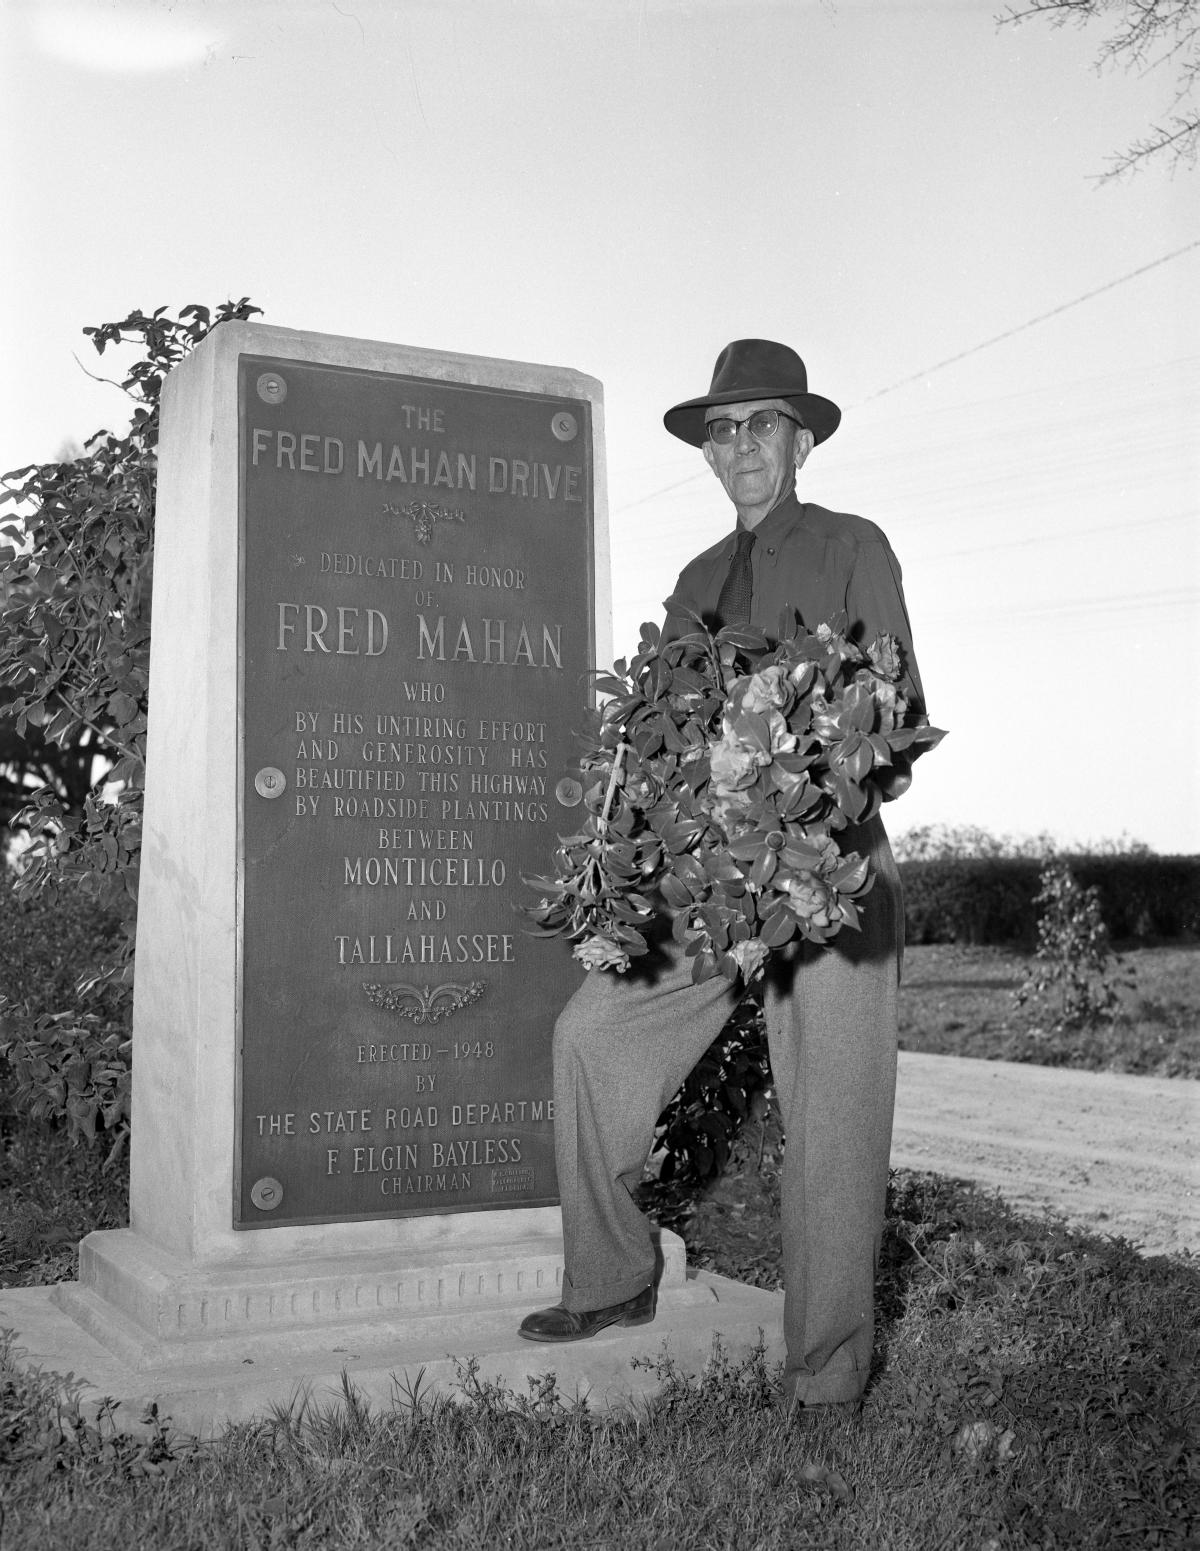 Fred Mahan standing beside the Fred Mahan Drive marker.